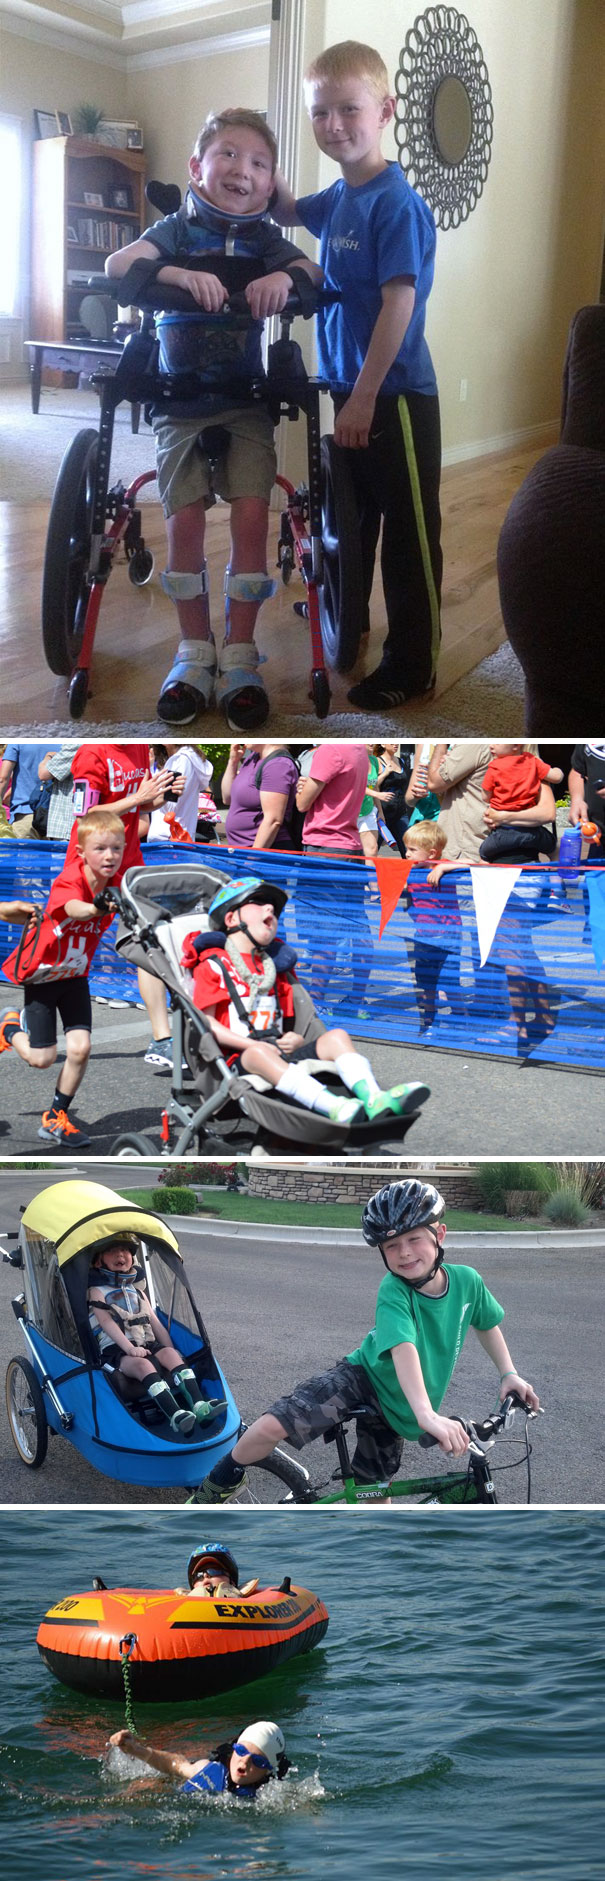 8-Year-Old Noah Completes Mini-Triathlon With His Disabled Brother Lucas